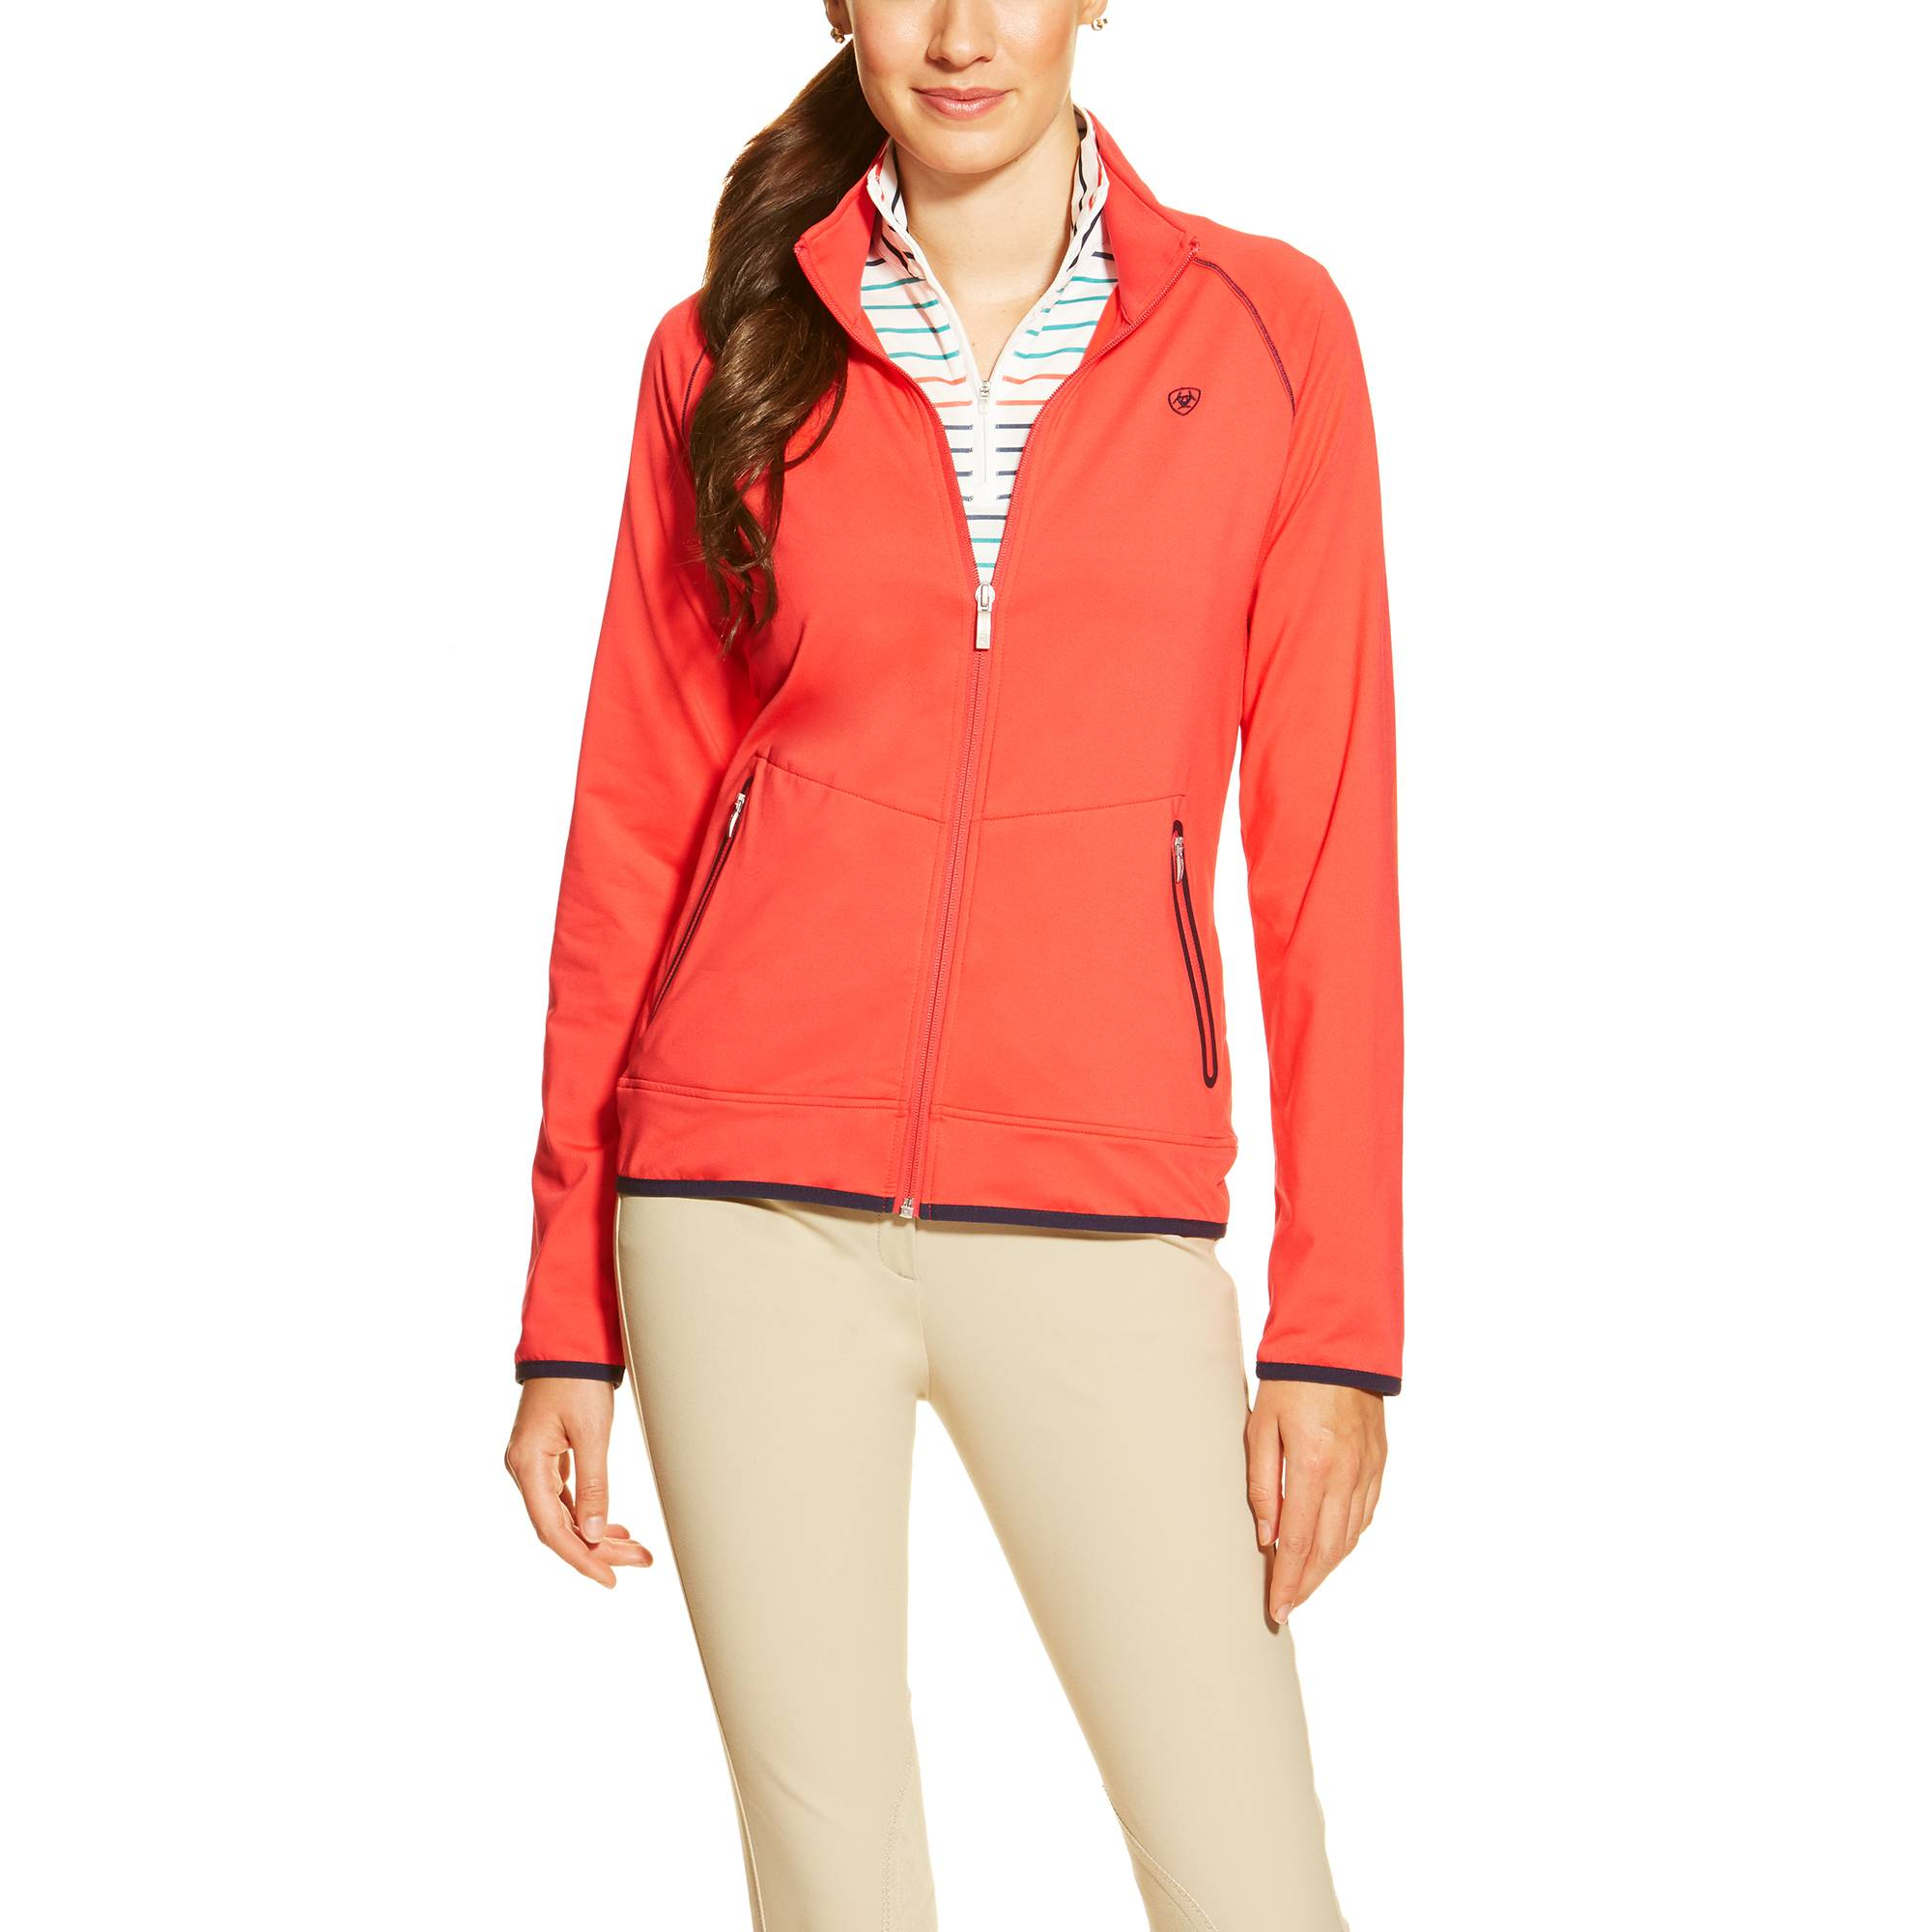 Ariat Ballad Full Zip - Ladies - Flame